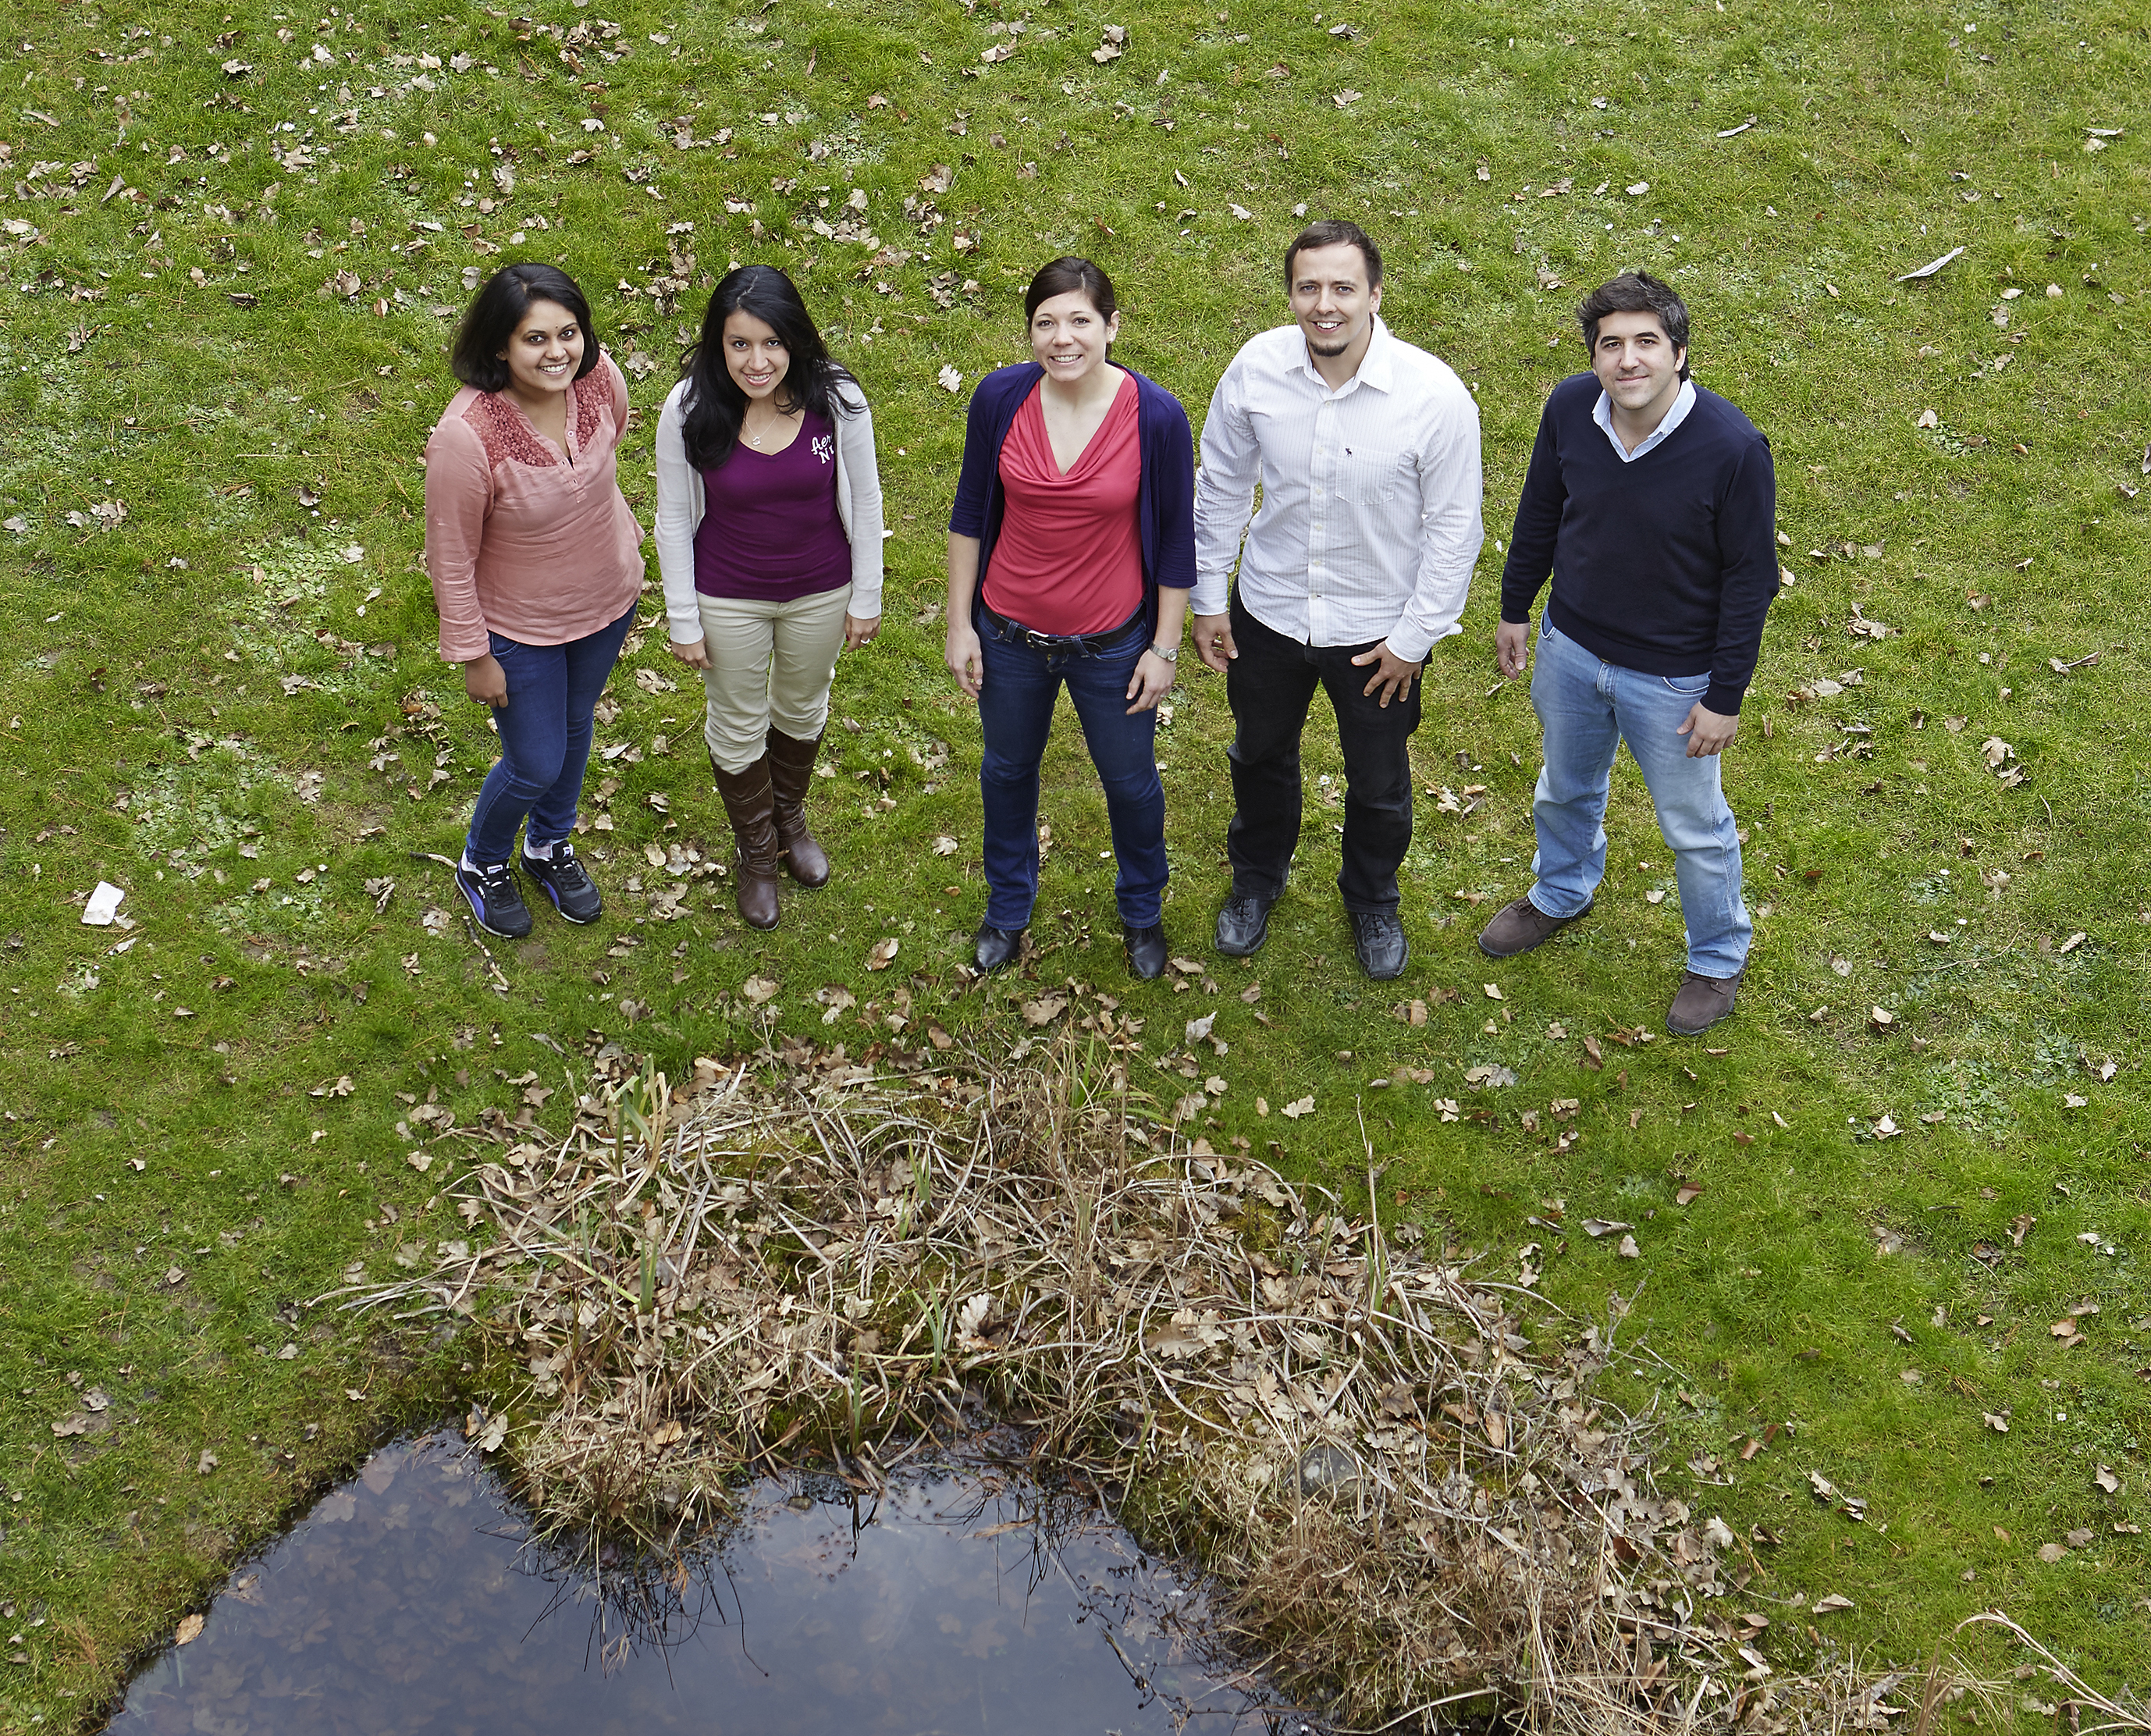 Zaugg Group March 2015 (Ana missing)